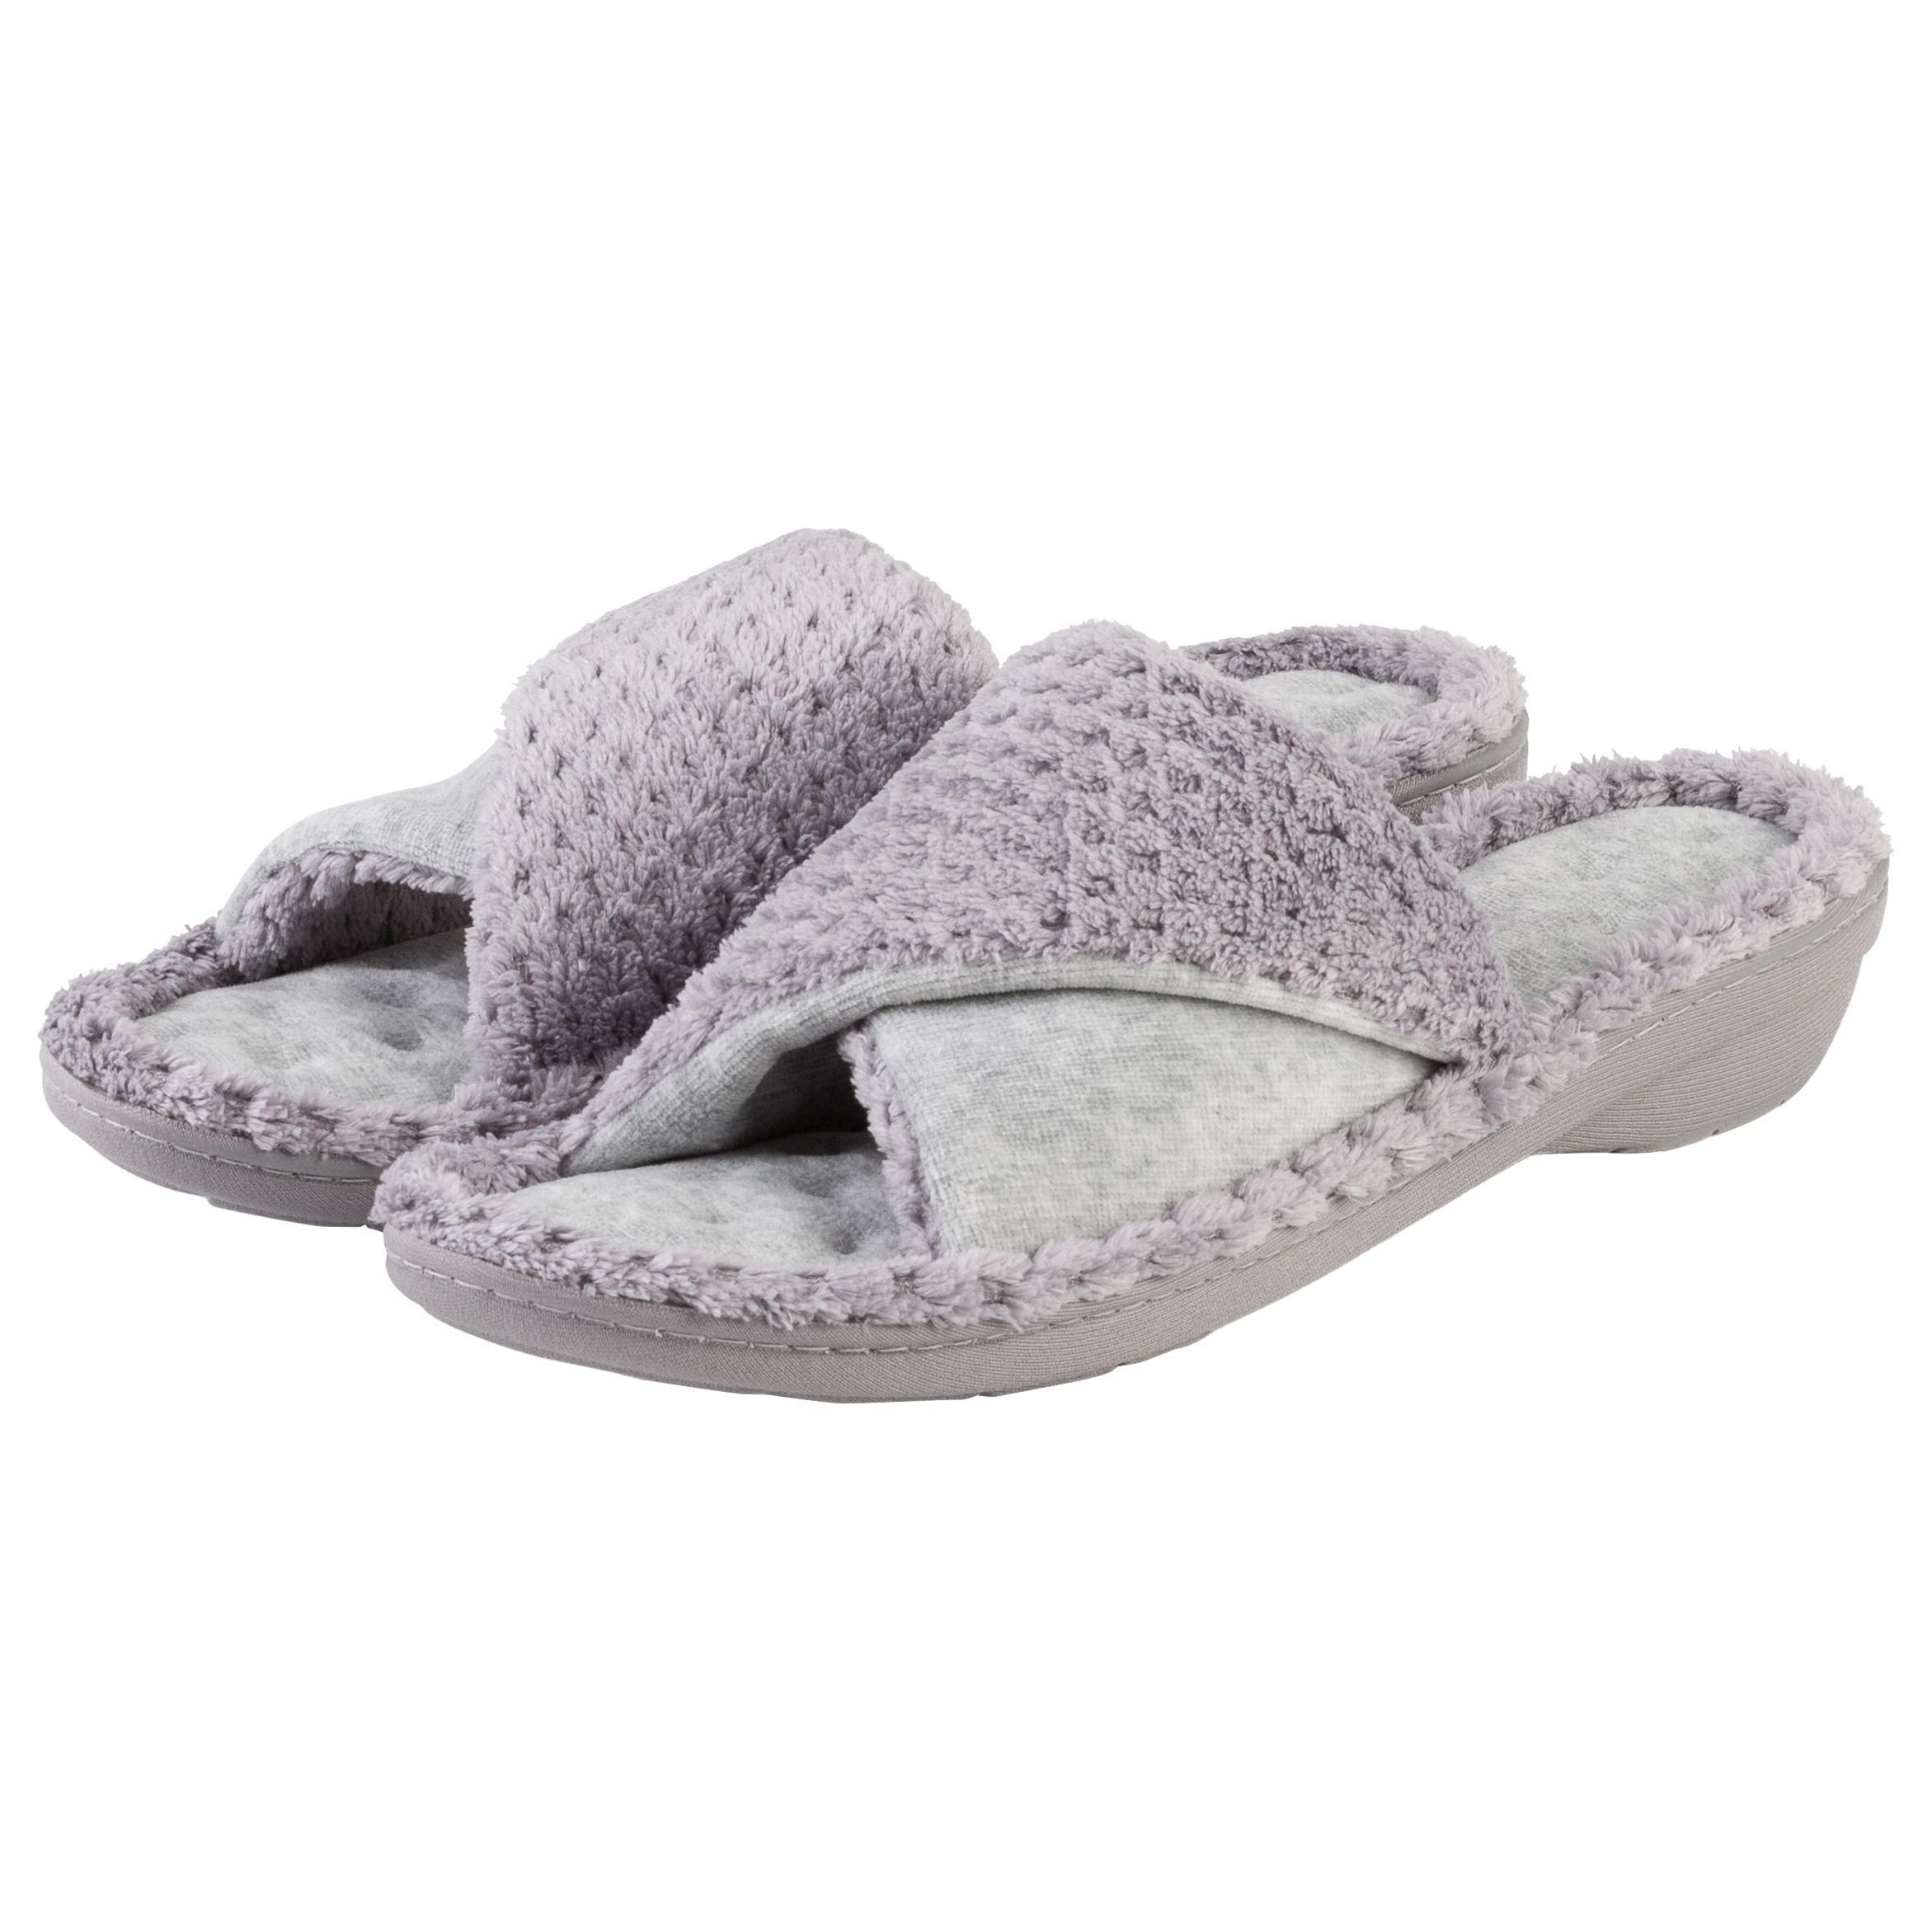 Totes Totes Popcorn Turnover Open Toe Slippers, Grey